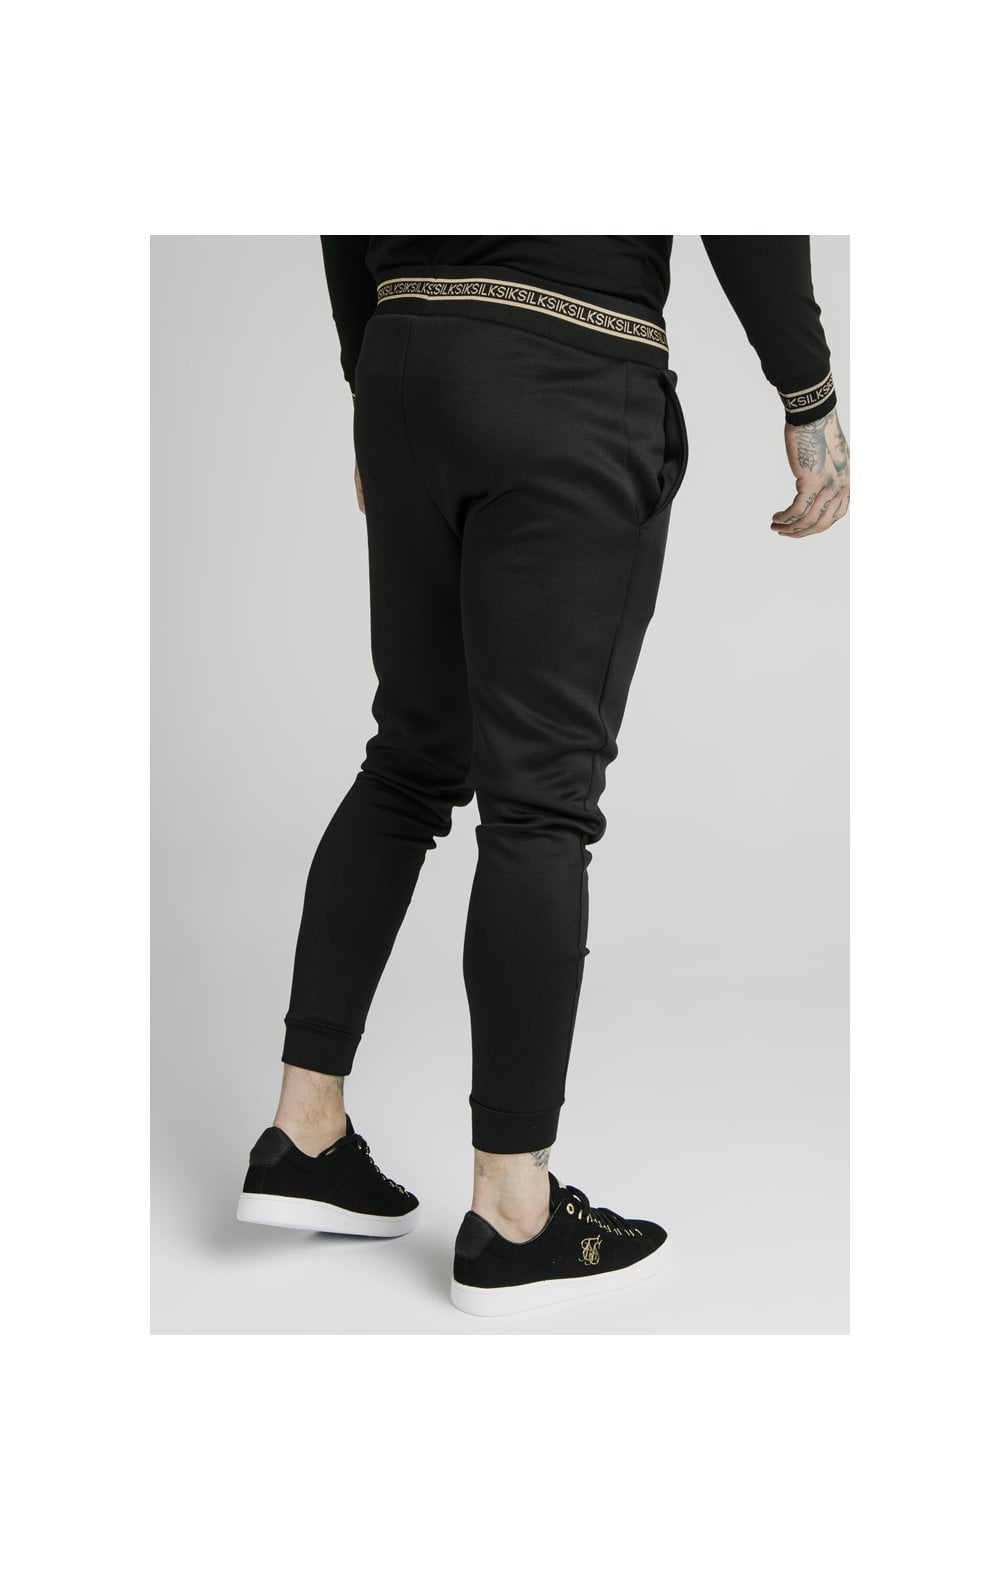 SikSilk Element Muscle Fit Cuff Joggers– Black & Gold (3)